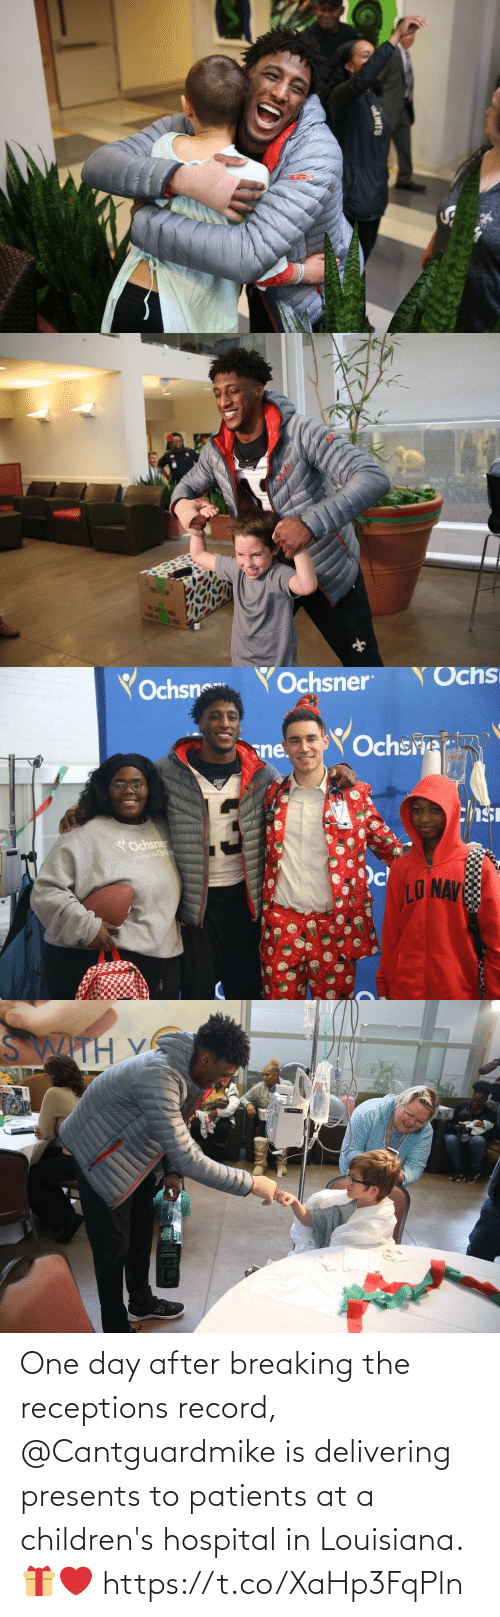 Record: AINTS   TRIS! 1P  FRLE CA T  LENE LA   Yochsn  YOchsner  Ochs  Ochsre  sne.  chsi  YOchsner  Hospai For Childwan  LO NAV   SWITH V One day after breaking the receptions record, @Cantguardmike is delivering presents to patients at a children's hospital in Louisiana. 🎁❤️ https://t.co/XaHp3FqPln